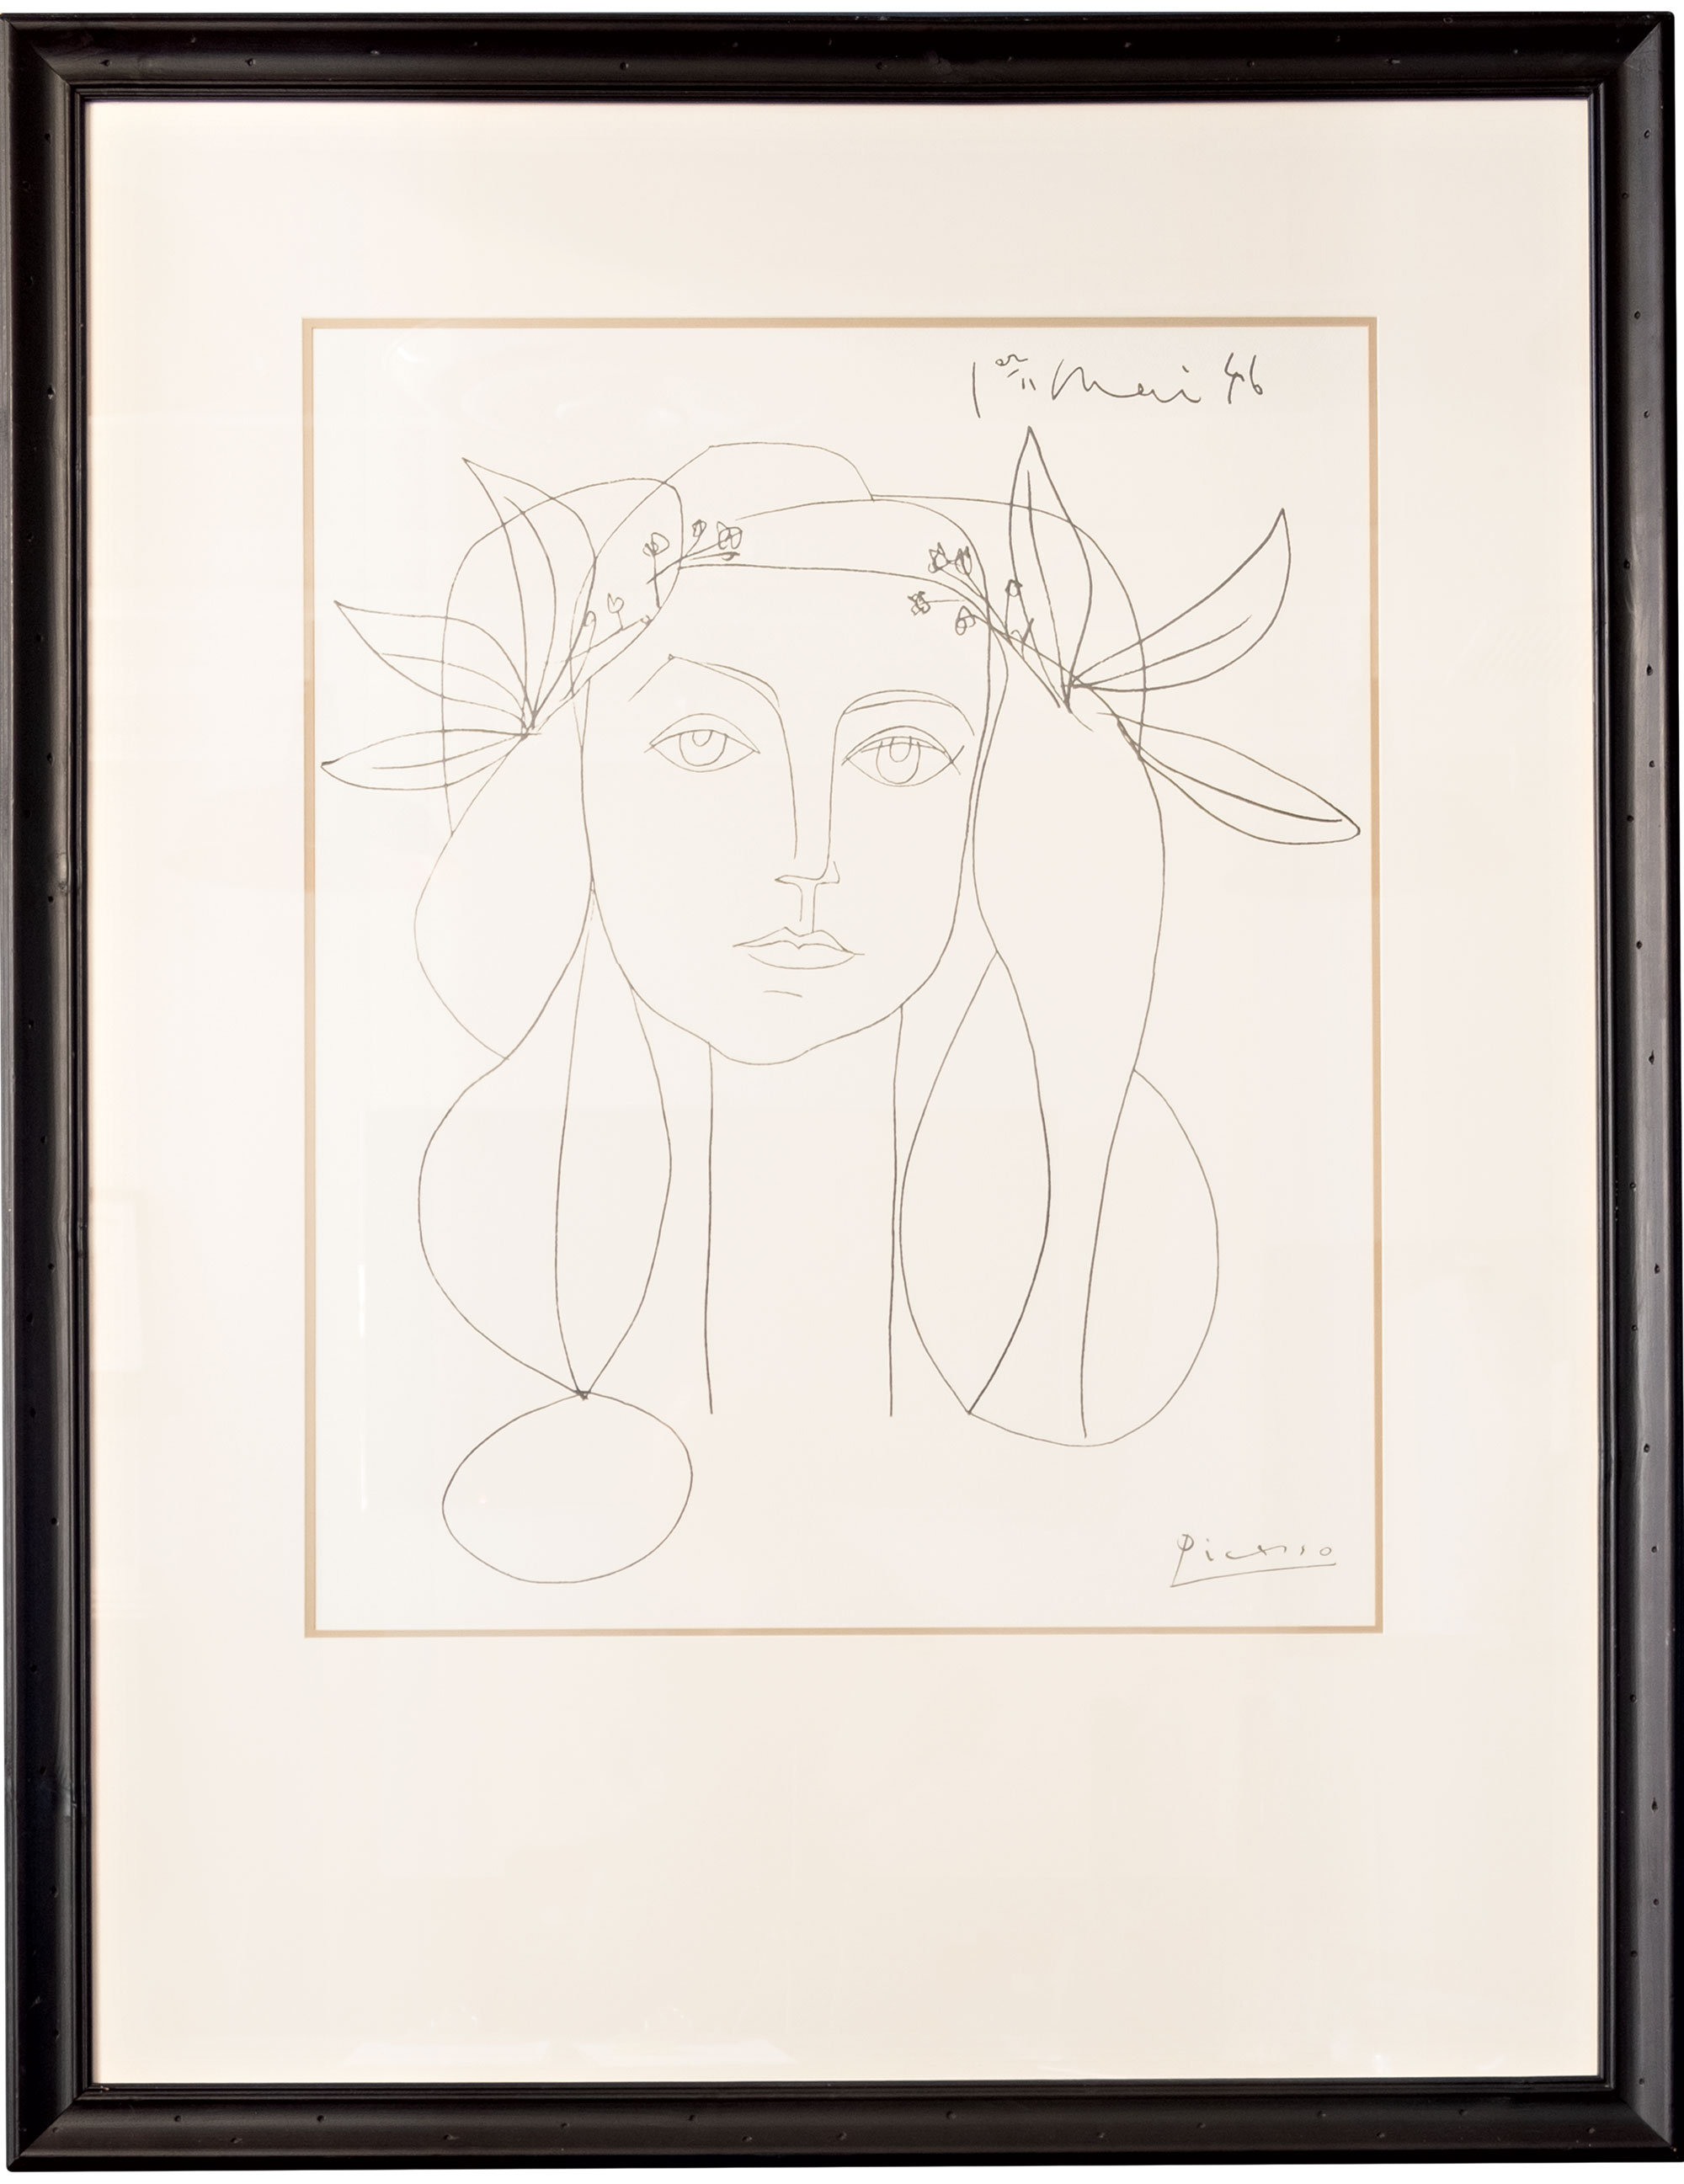 This untitled drawing by surrealist legend Pablo Picasso hangs in the Scottsdale clinic of Dr. Lewis Albert Andres, a plastic surgeon and multiyear Top Doctor. It came into his possession via his sister, who studied art in Spain and received the sketch from her instructor, who worked with Picasso. She gave it to Andres when he completed his plastic surgery residency.